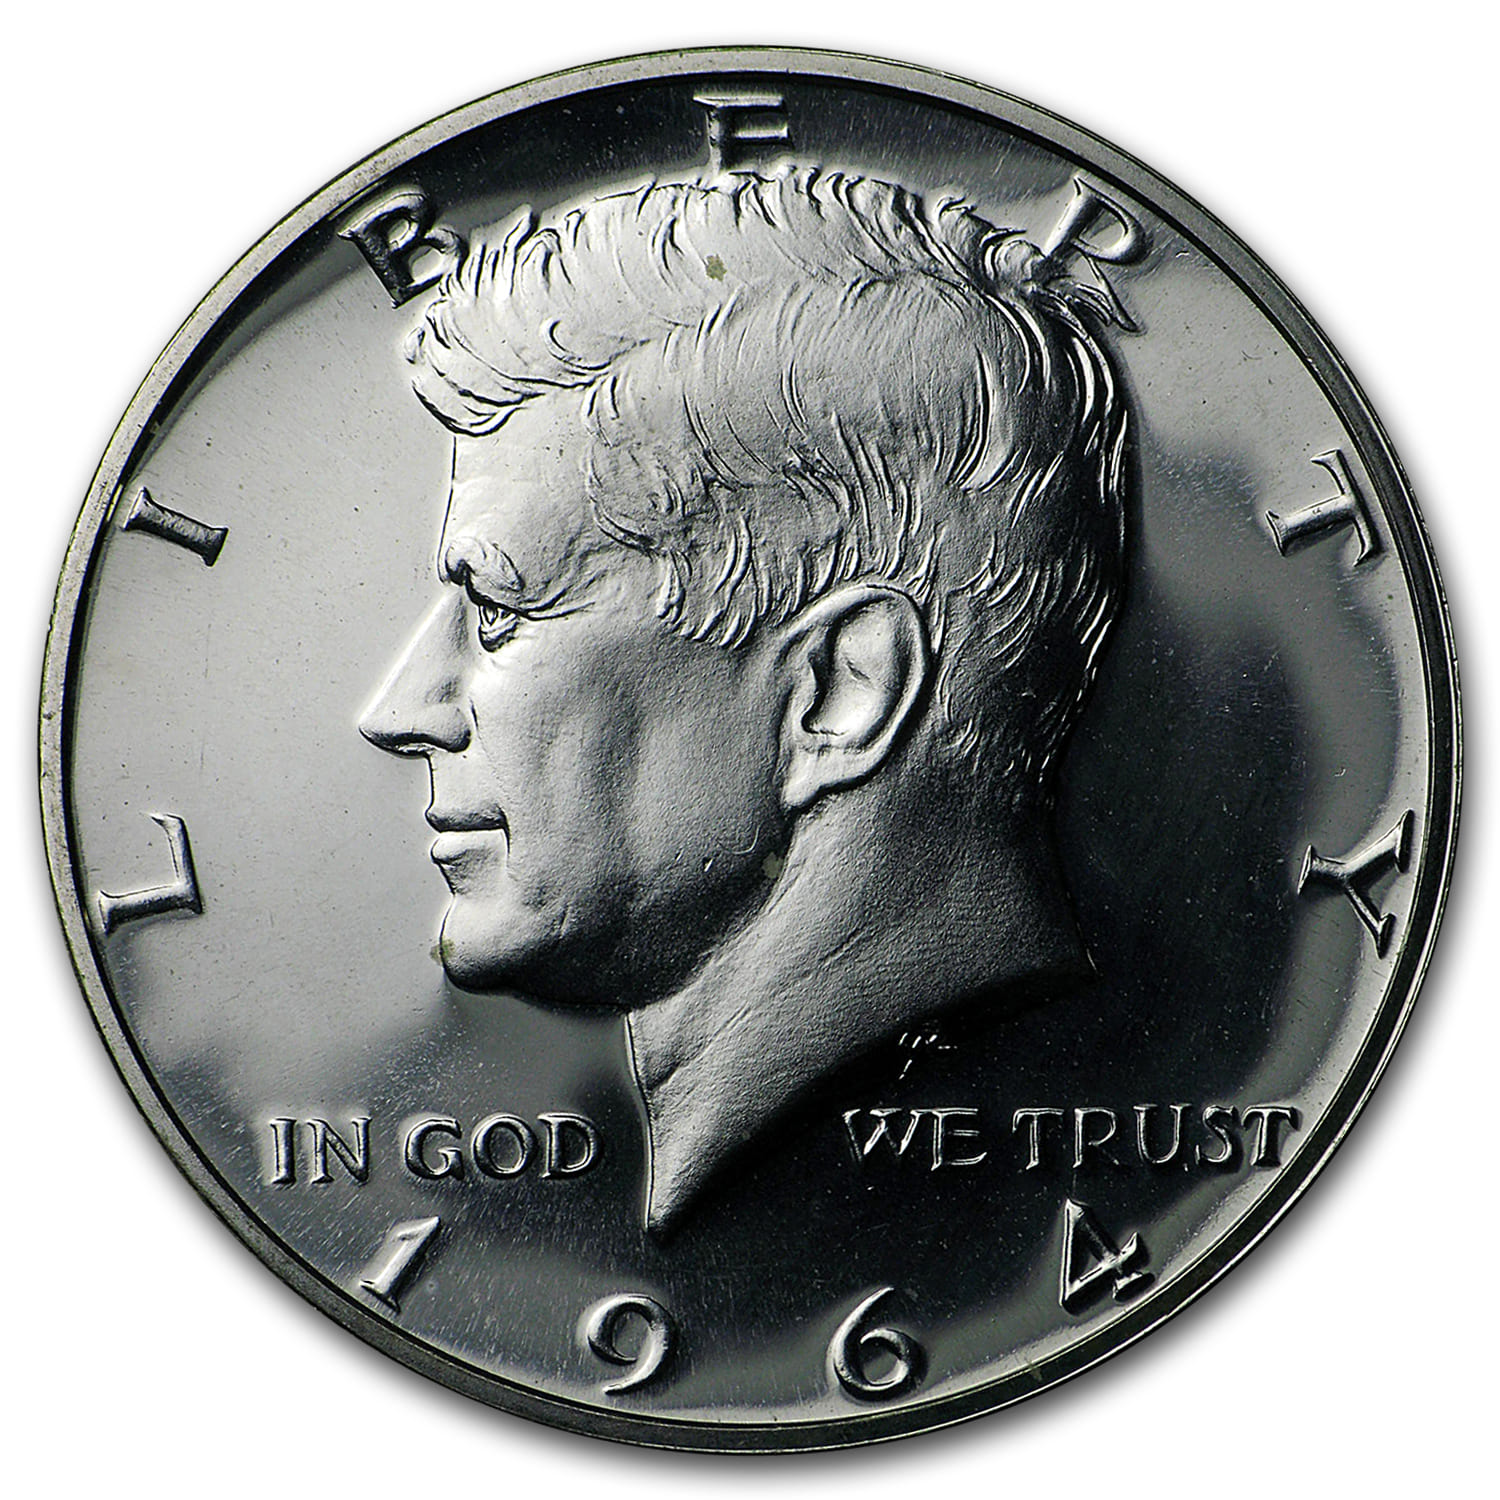 90% Silver Kennedy Halves $10 20-Coin Roll Proof (1964)